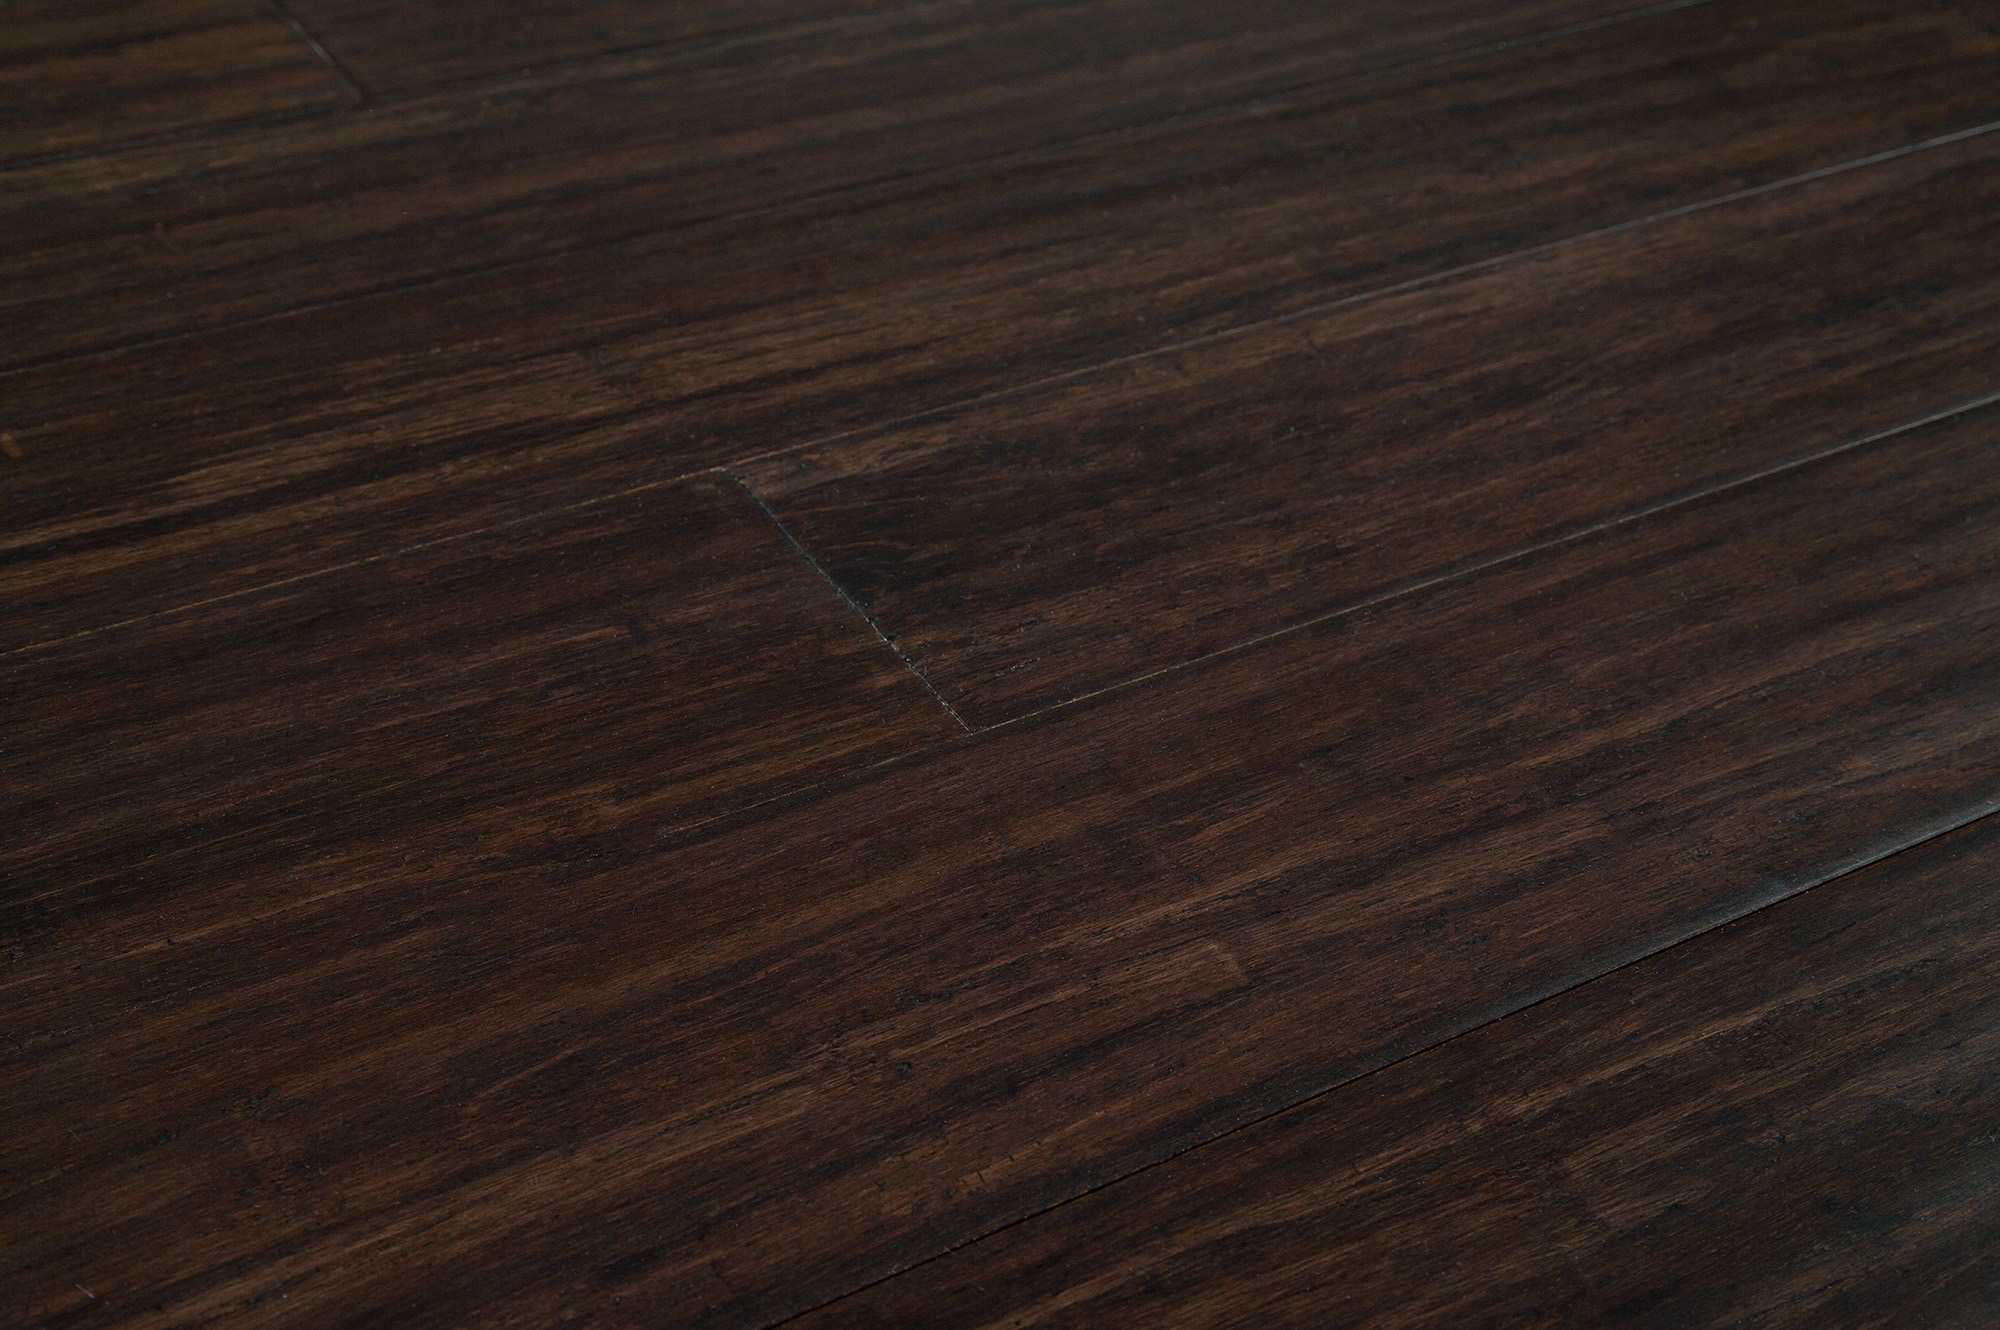 Yanchi 14mm Wide Plank T&G Solid Strand Woven Bamboo Flooring